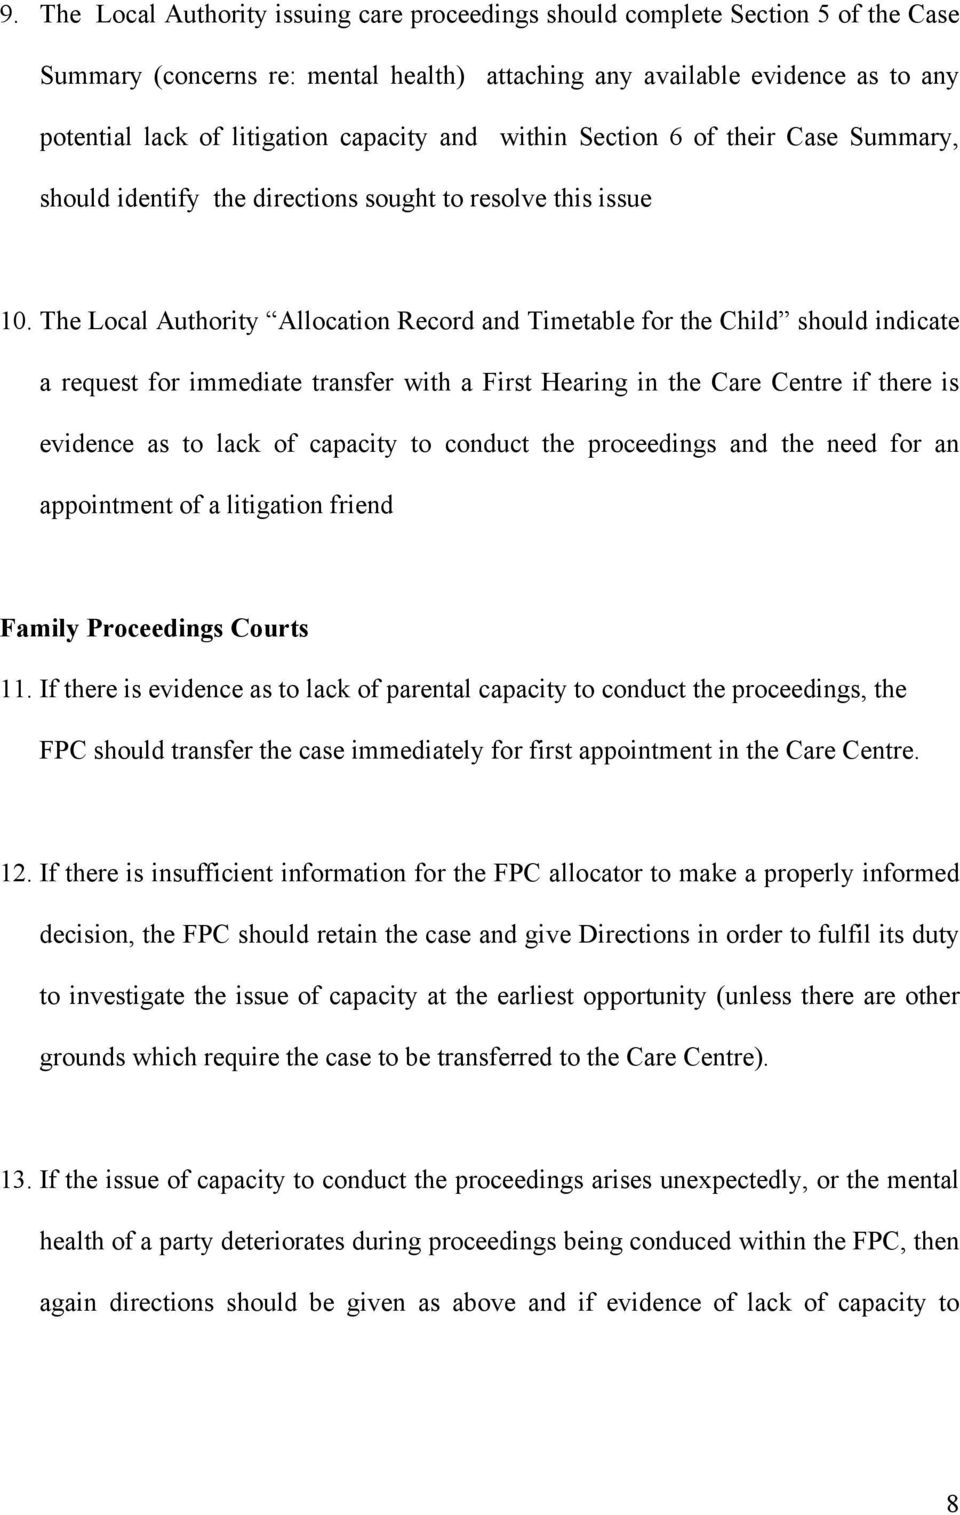 The Local Authority Allocation Record and Timetable for the Child should indicate a request for immediate transfer with a First Hearing in the Care Centre if there is evidence as to lack of capacity